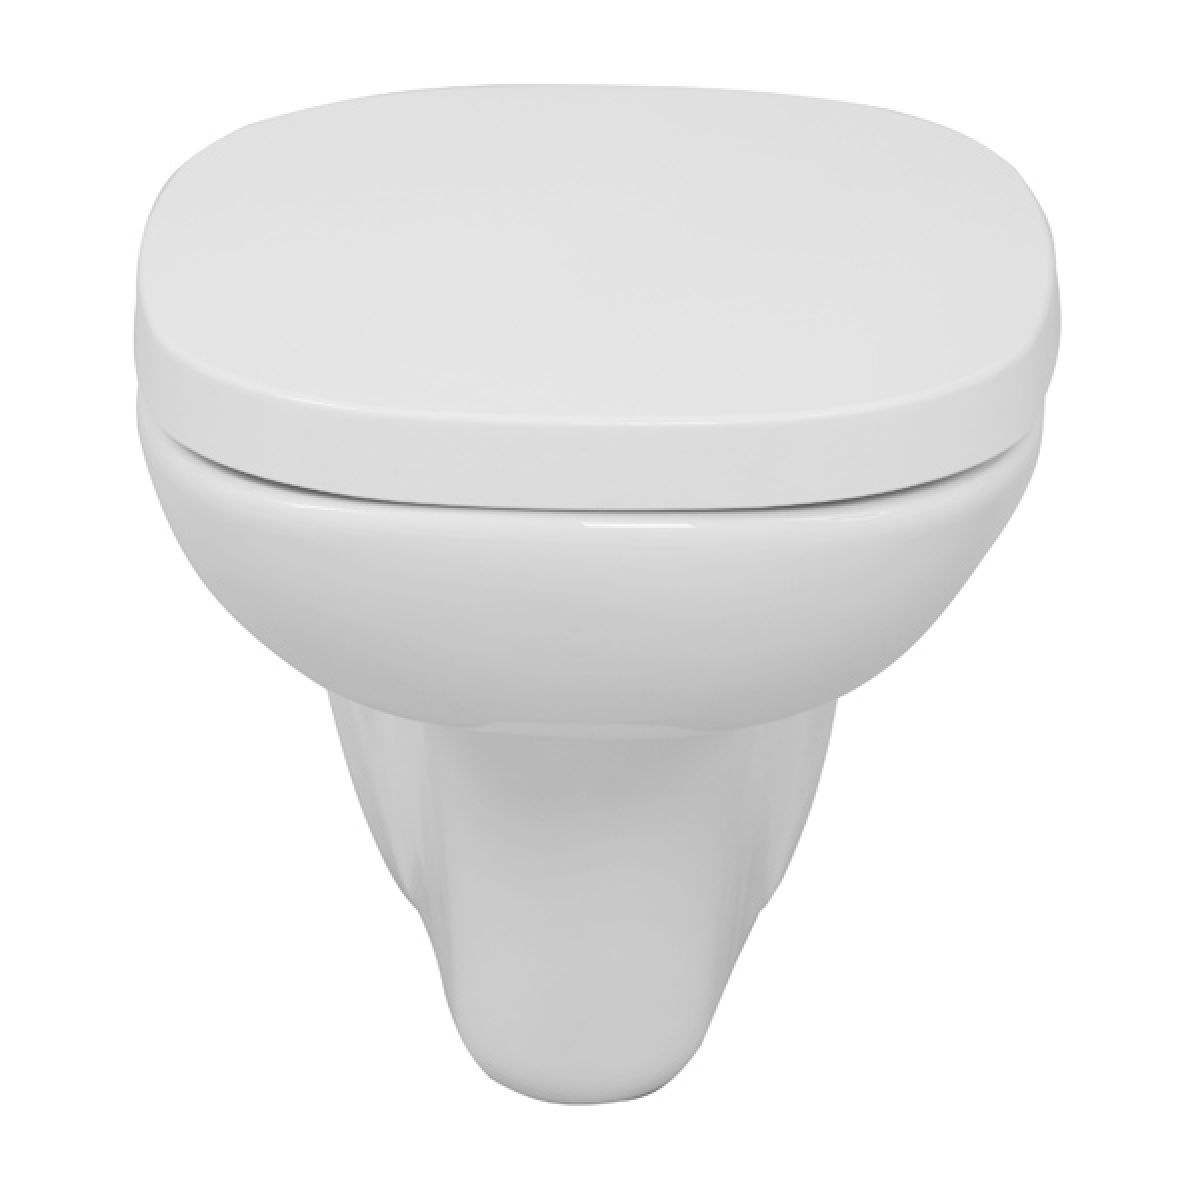 Frontline Petit2 Wall Hung Toilet